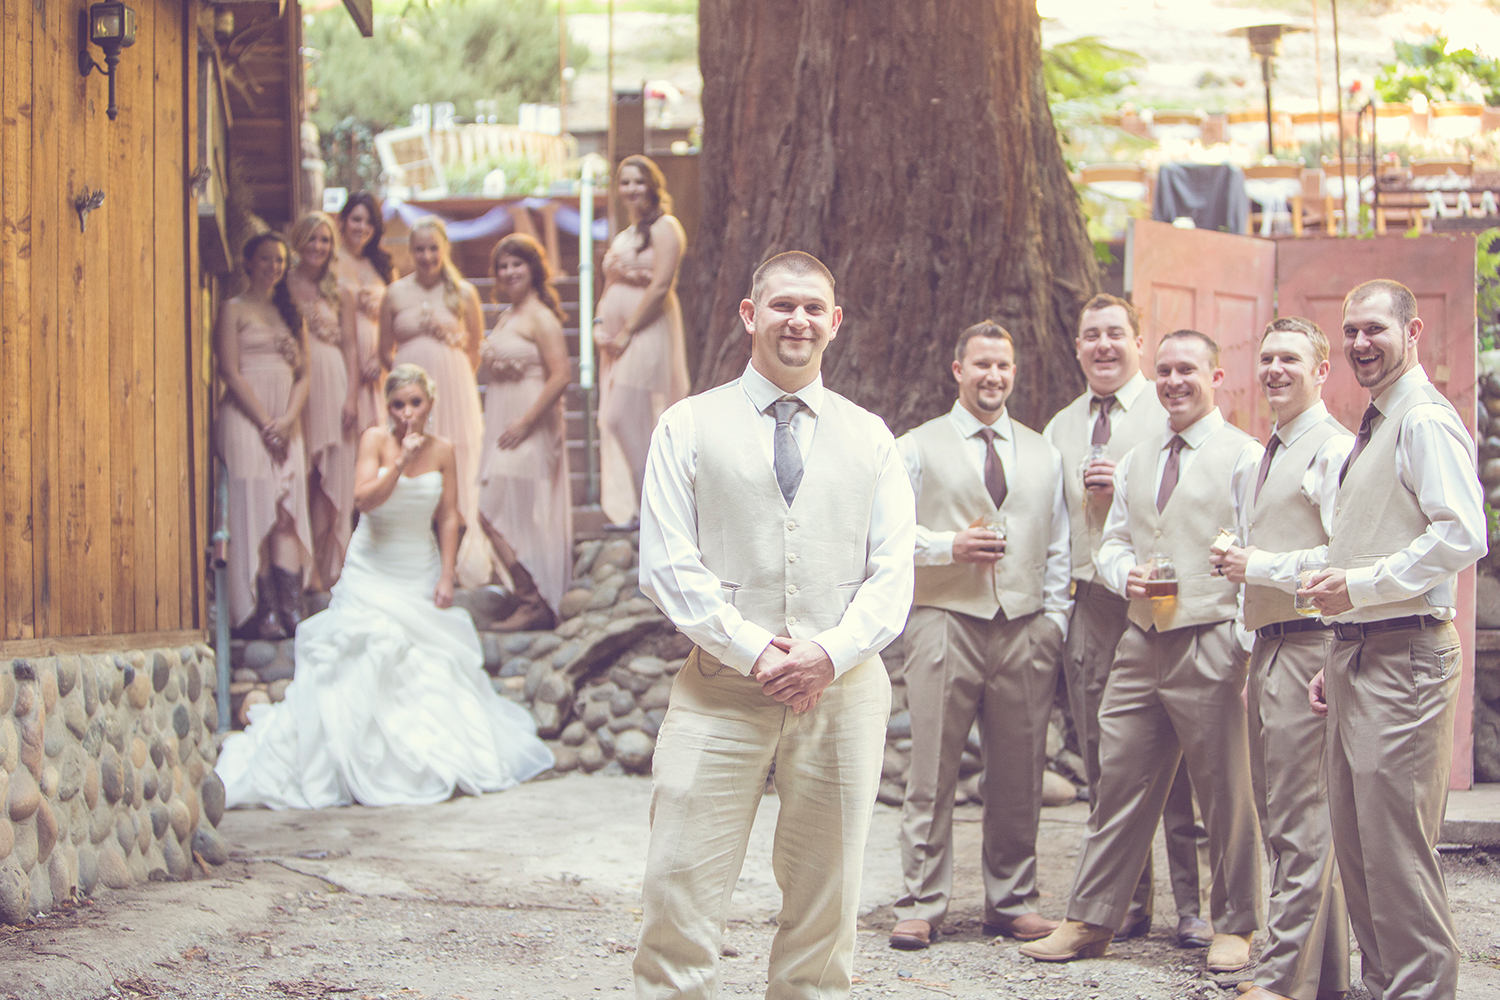 Dena_Rooney_Wedding_Photographer_Santa_Cruz_009.jpg